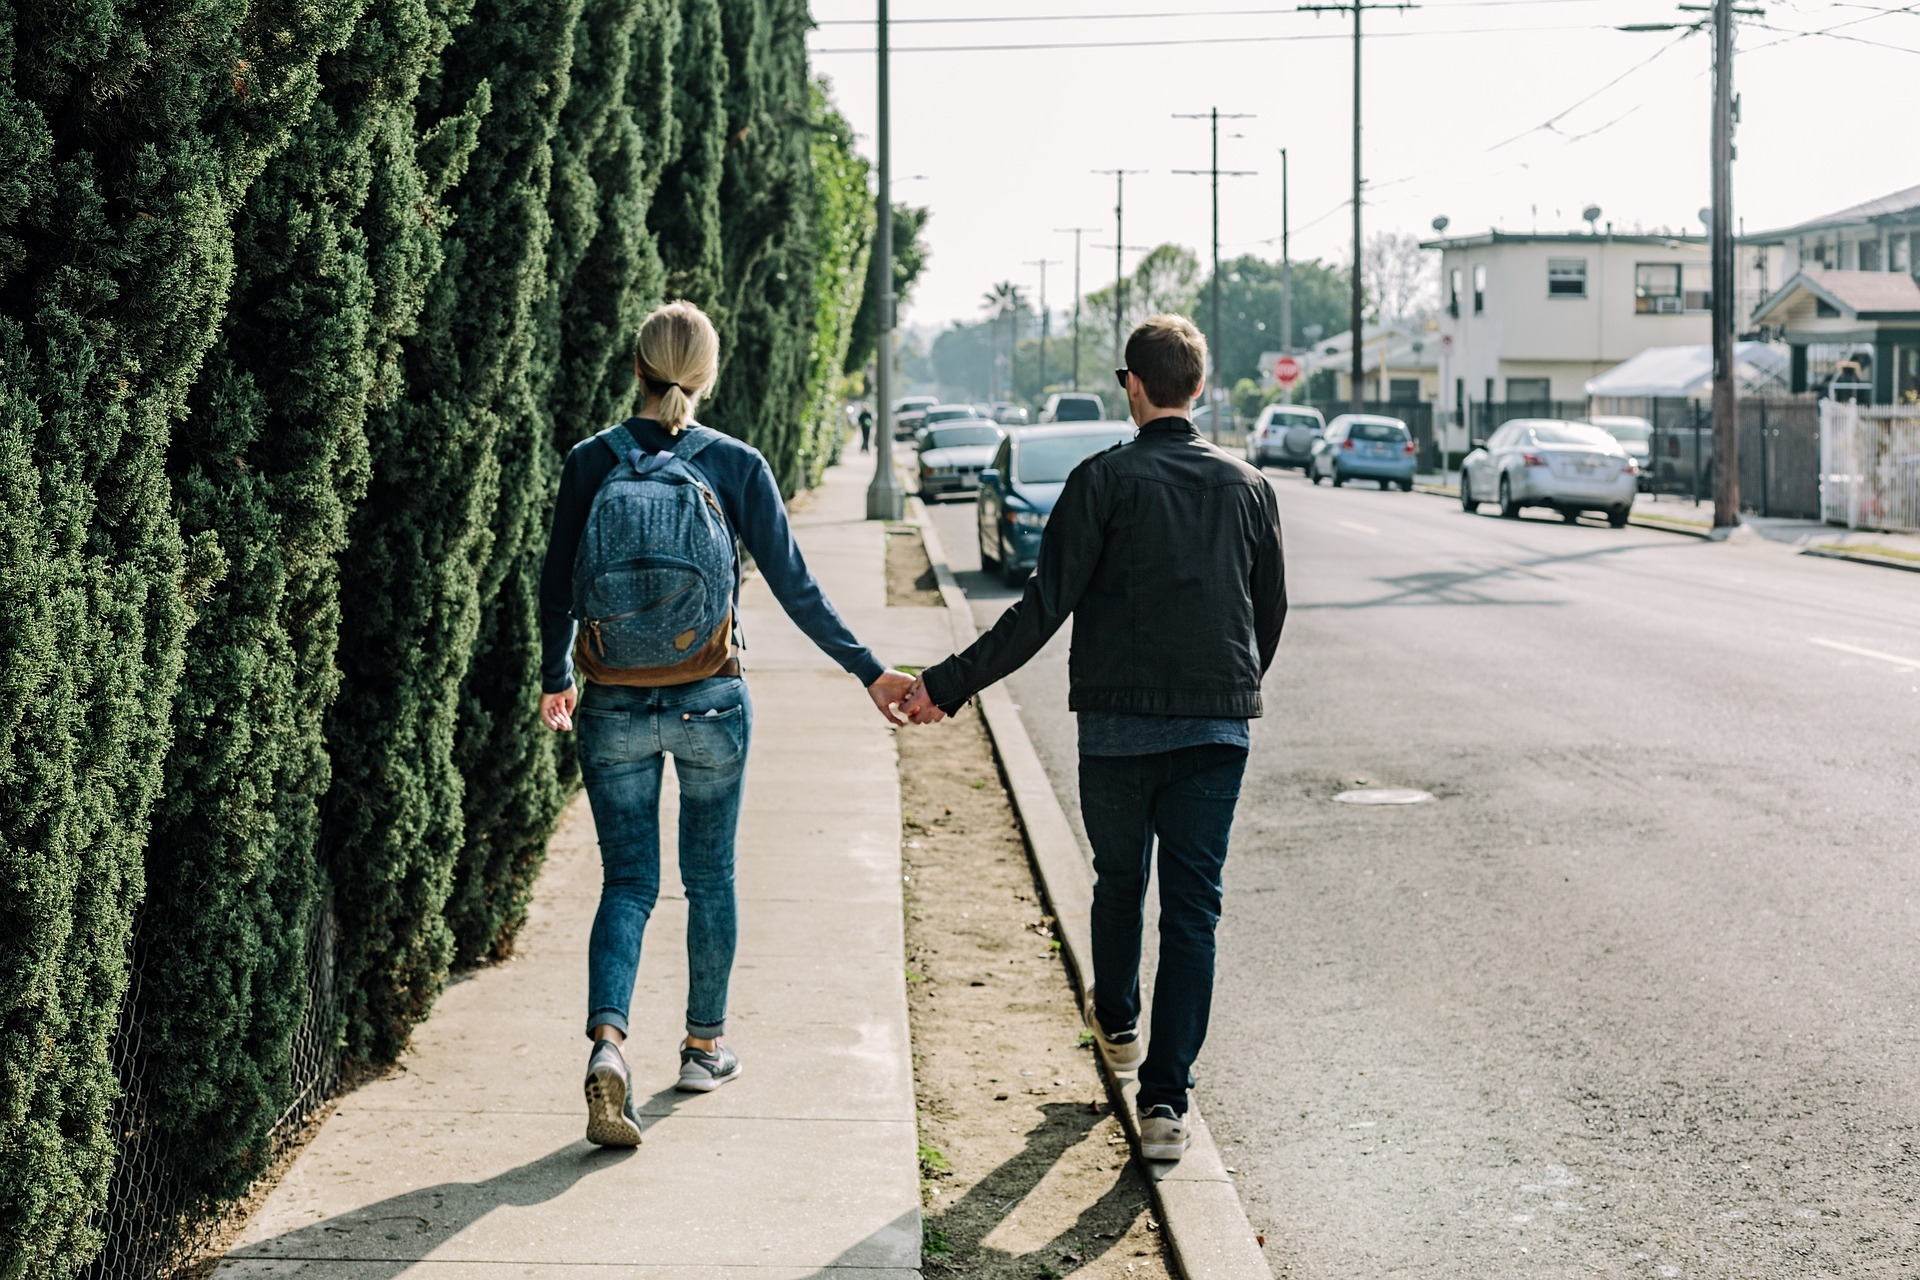 In an article about dating someone entering basic training, a couple holding hands in the street